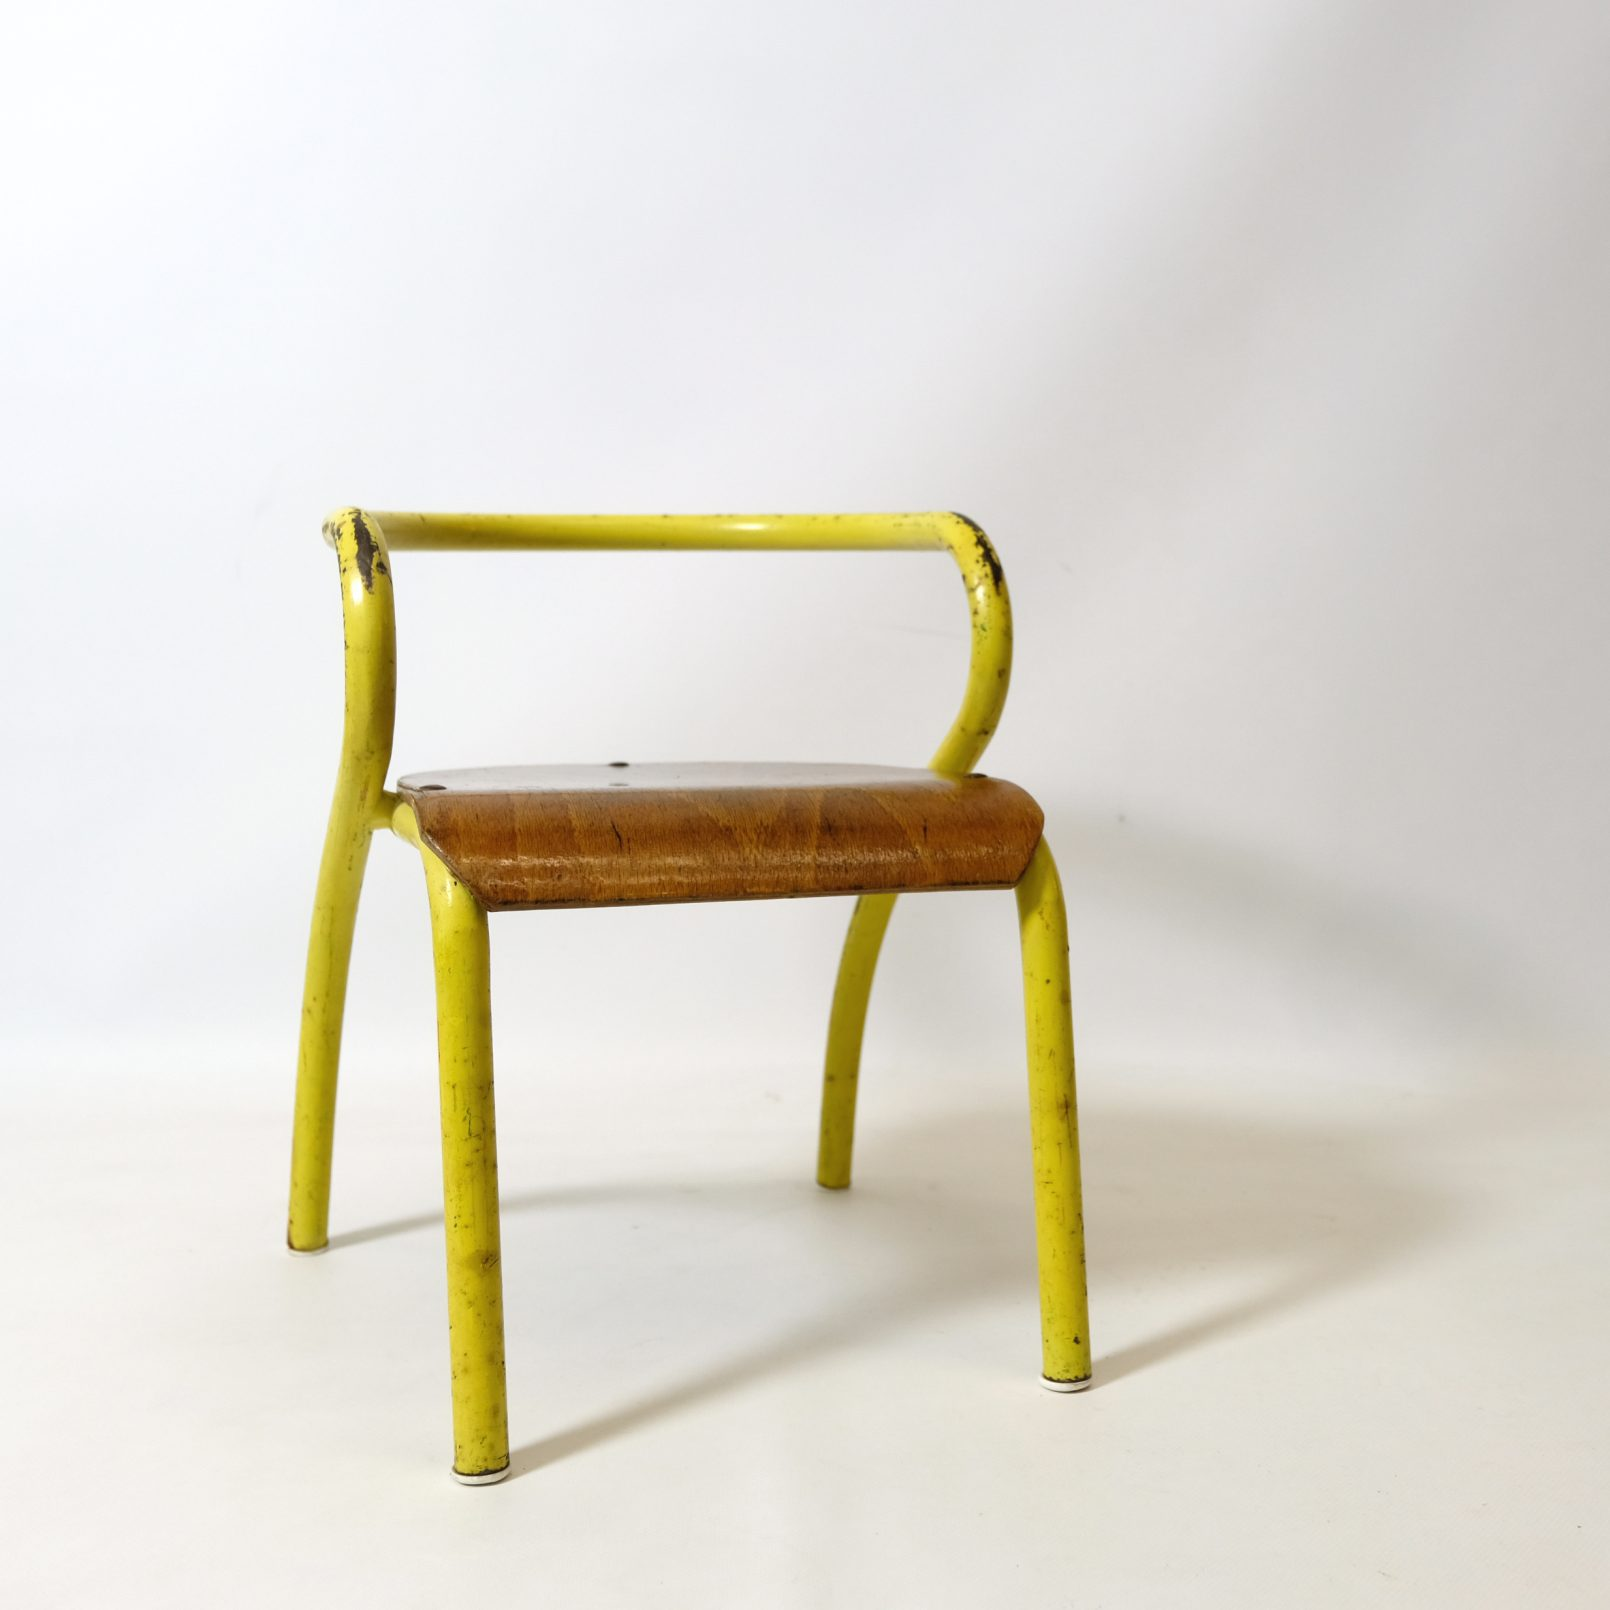 Mobilor child's chair by Jacques Hitier, 1940s.